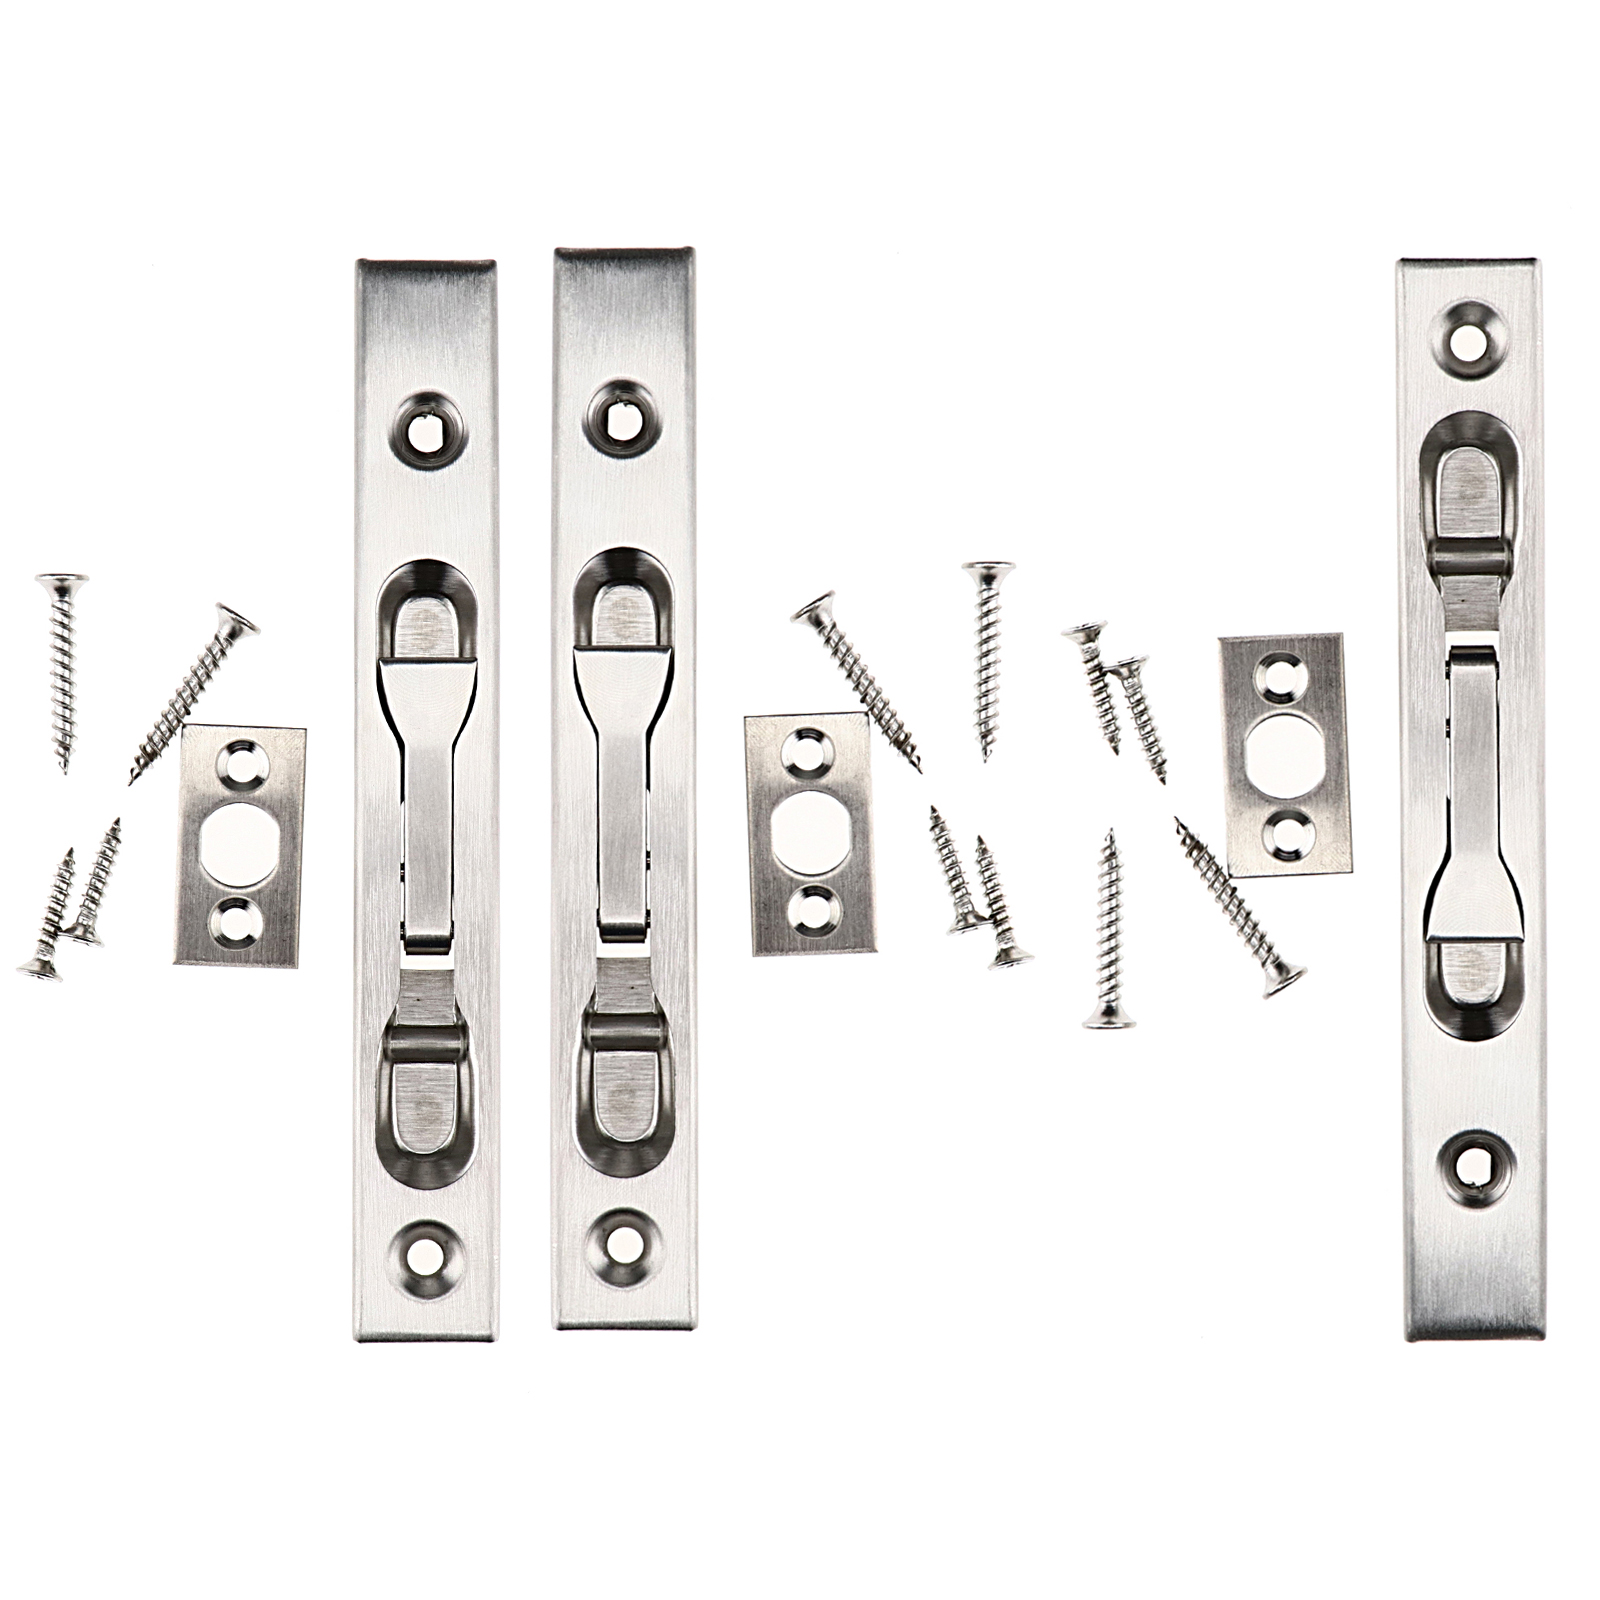 Details about Stainless Steel Safety Door Guard Lever Action Flush Latch Slide Bolt Lock